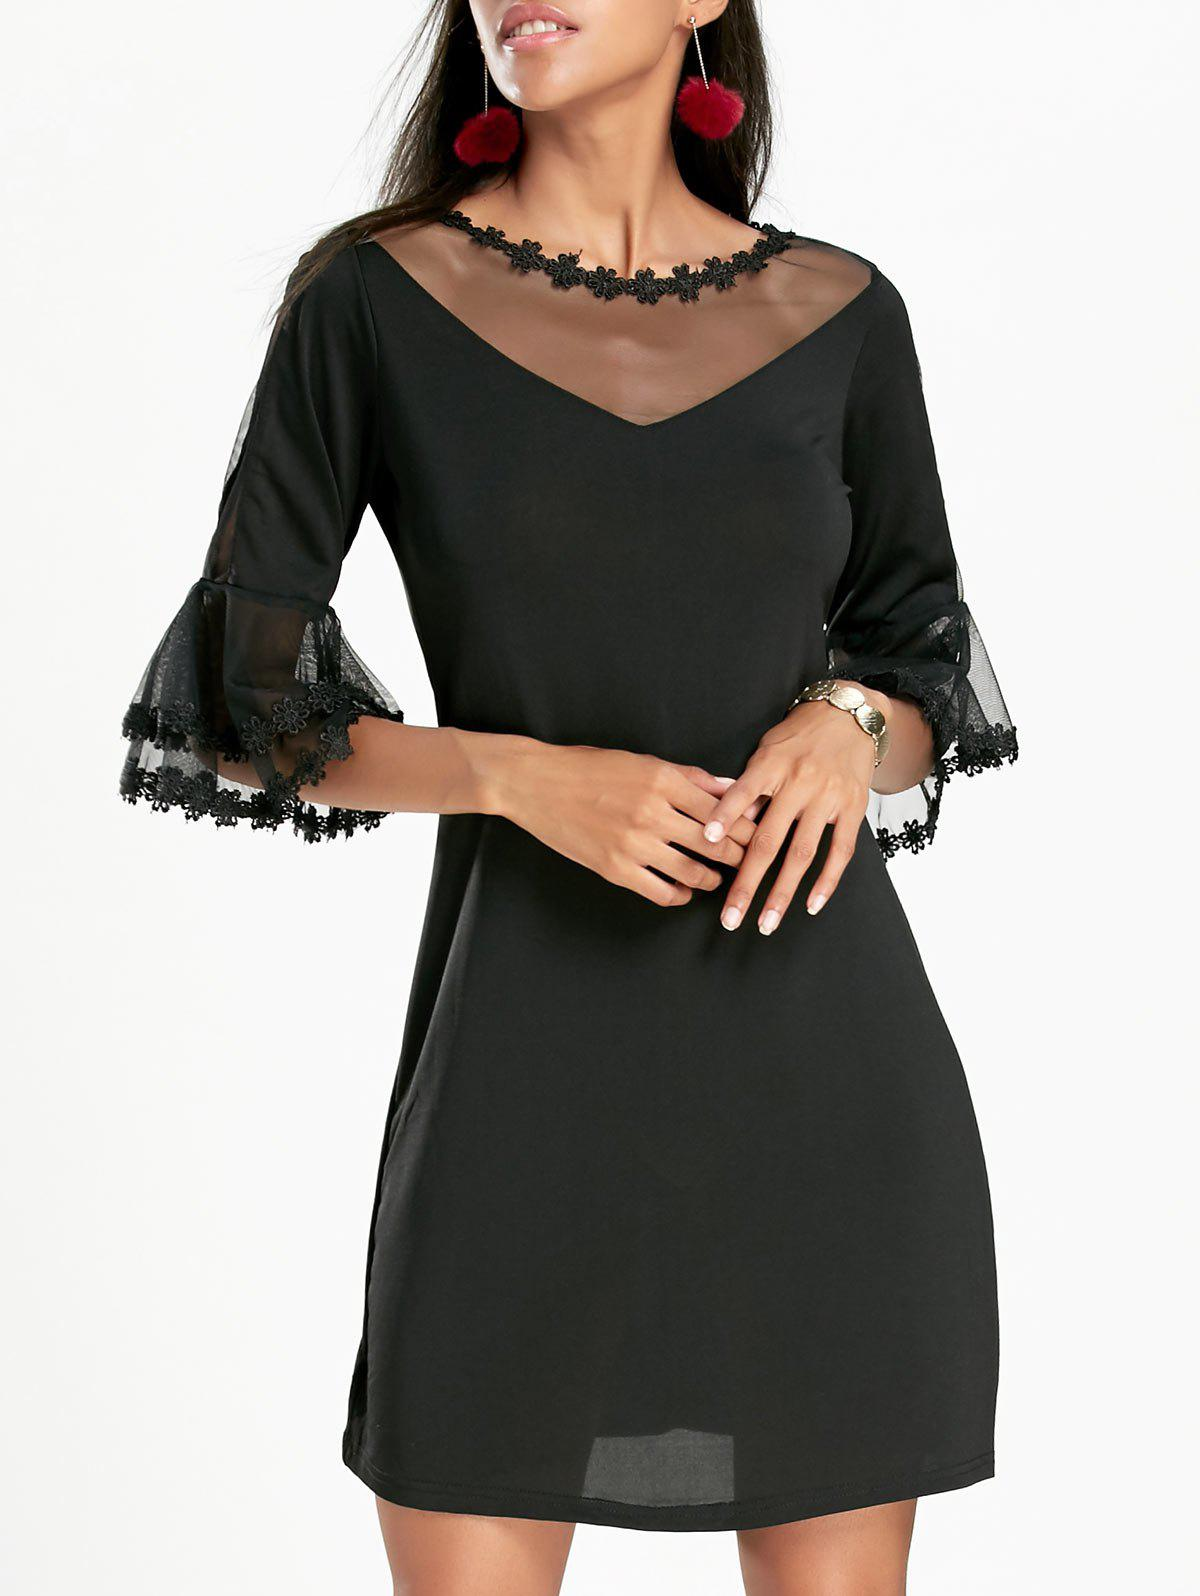 Bell Sleeve Sheer Mesh Insert Mini DressWOMEN<br><br>Size: XL; Color: BLACK; Style: Brief; Material: Cotton,Polyester; Silhouette: Shift; Dresses Length: Mini; Neckline: Round Collar; Sleeve Length: 3/4 Length Sleeves; Pattern Type: Solid Color; With Belt: No; Season: Fall,Spring; Weight: 0.2600kg; Package Contents: 1 x Dress; Occasion: Casual;